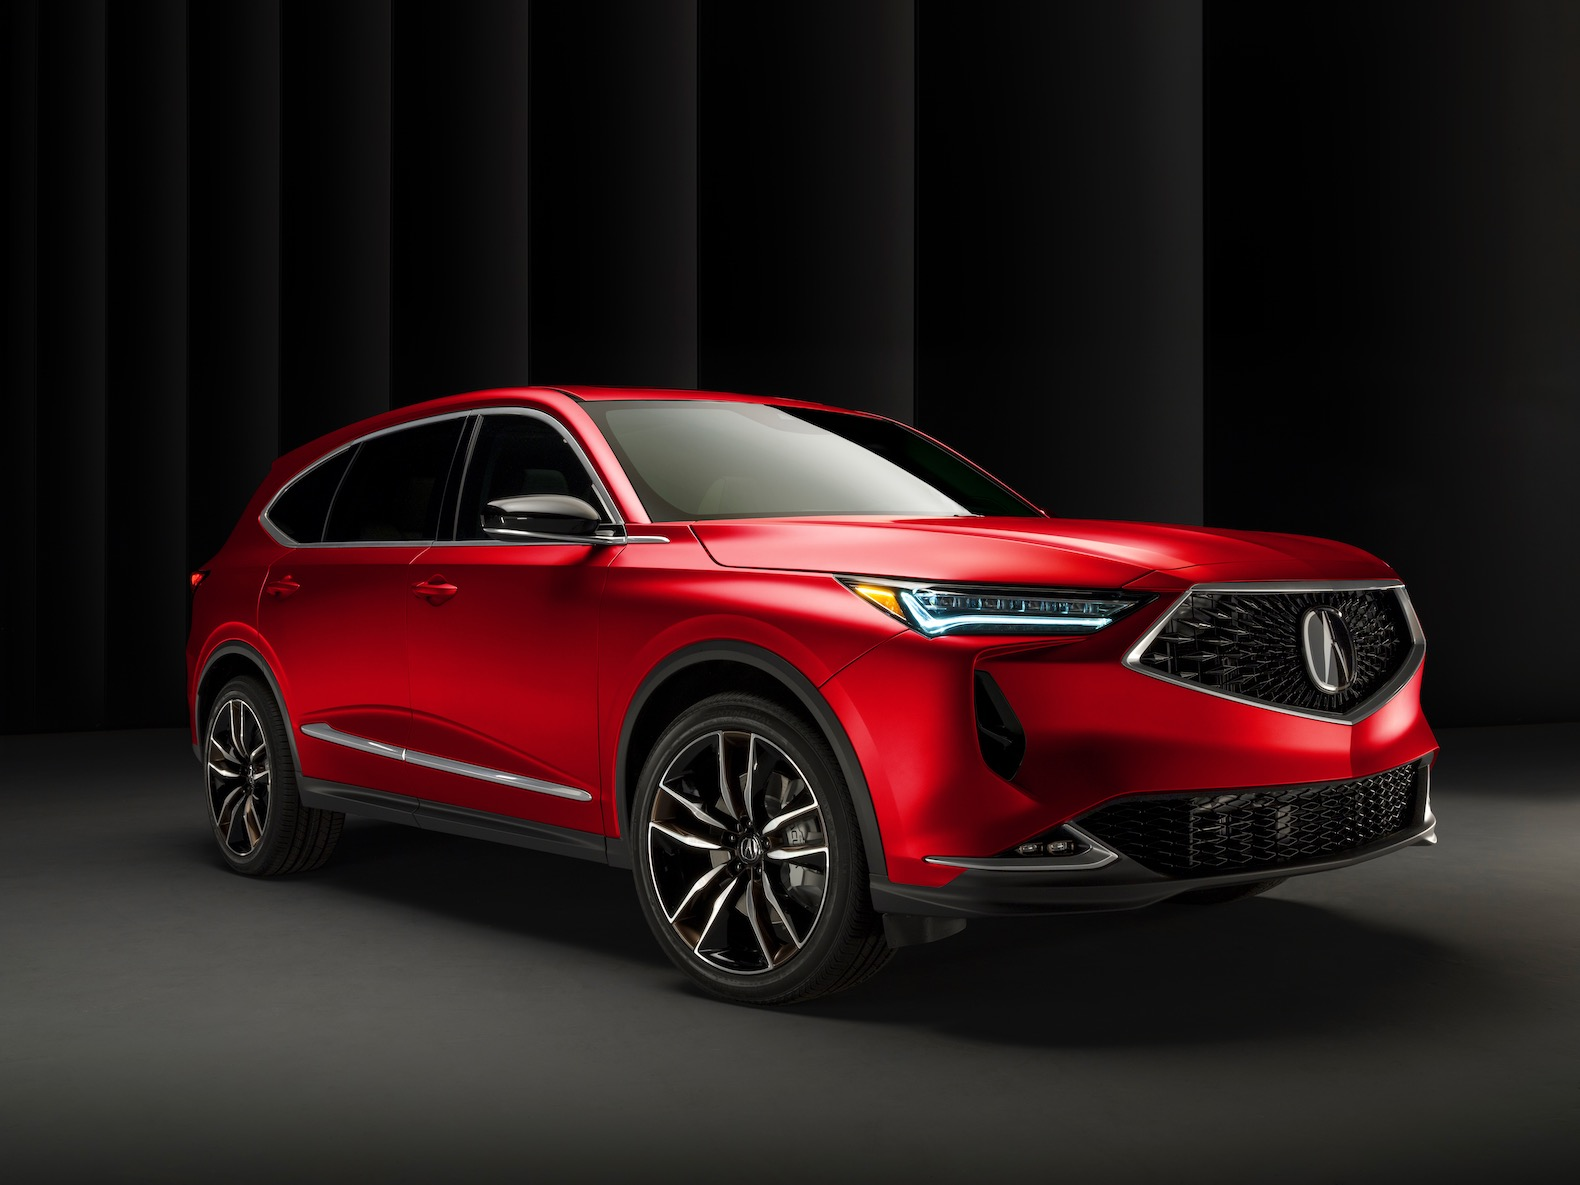 2022 acura mdx will debut on dec 8 | the torque report